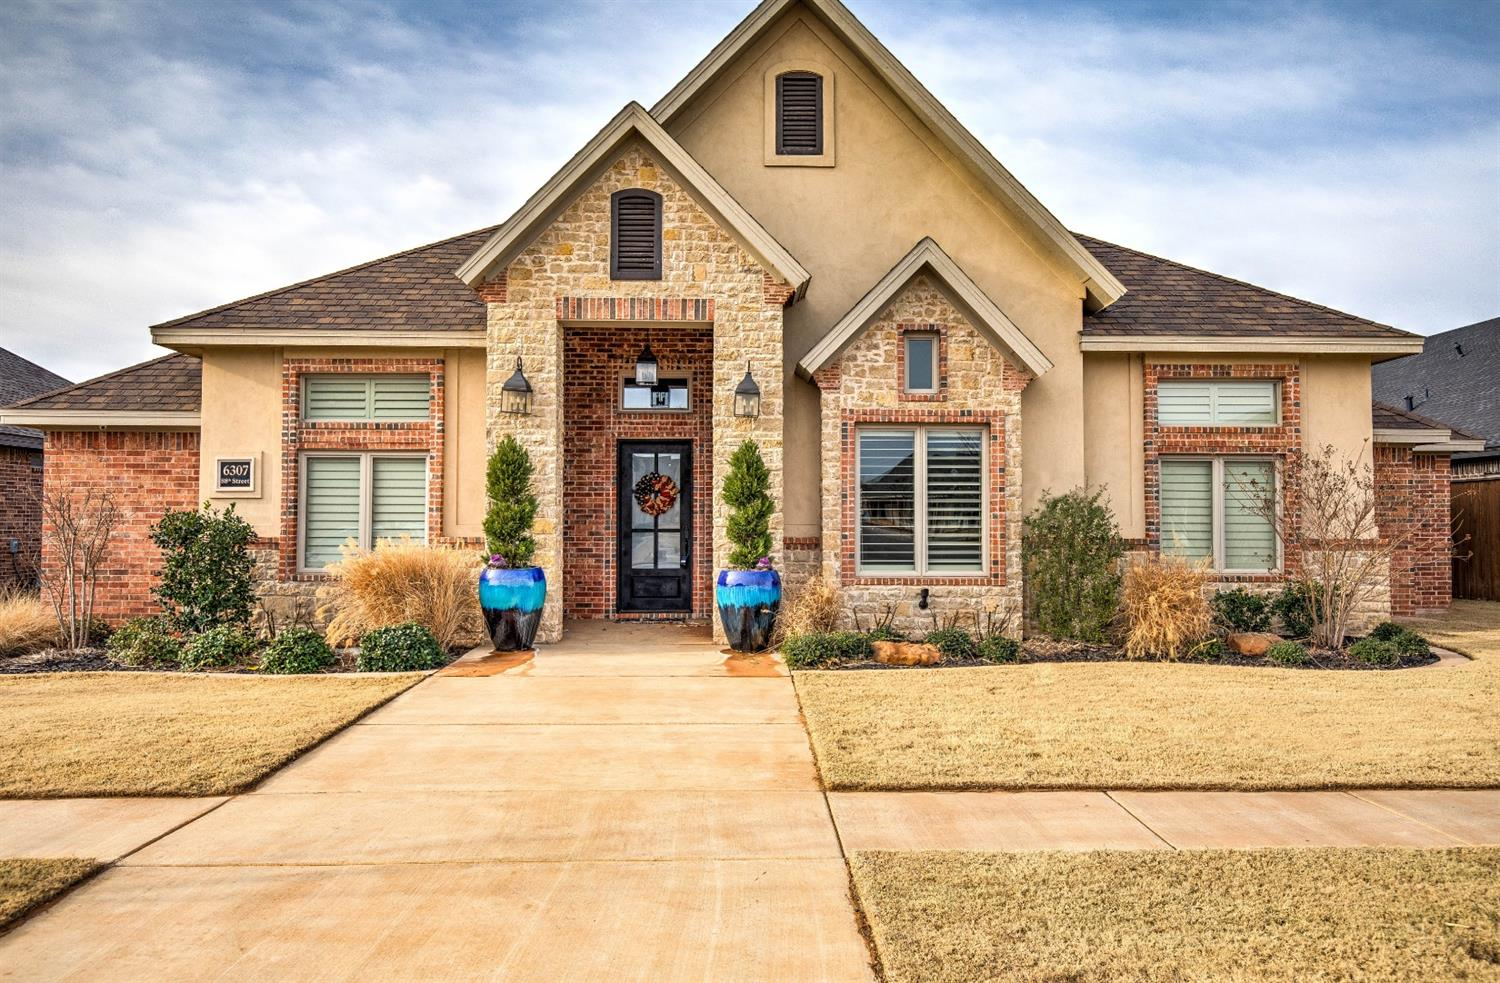 6307 88th Street, Lubbock in Lubbock County, TX 79424 Home for Sale